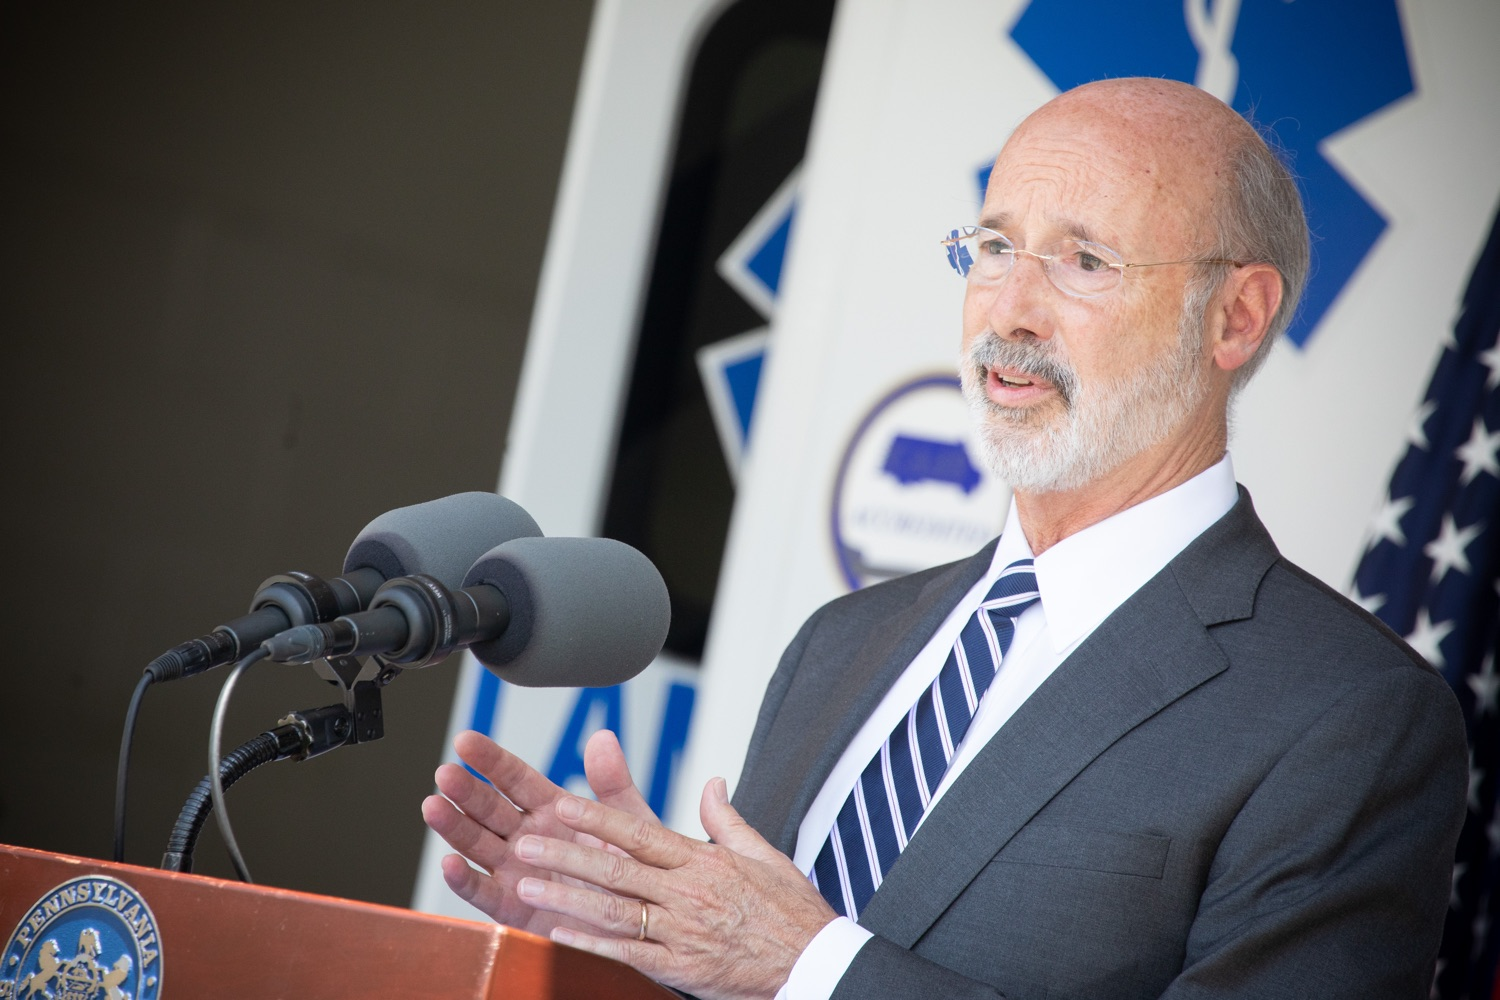 "<a href=""https://filesource.wostreaming.net/commonwealthofpa/photo/18180_gov_first_responders_dz_018.jpg"" target=""_blank"">⇣ Download Photo<br></a>Pennsylvania Governor Tom Wolf speaking to the press. Governor Tom Wolf visited the Millersville location of Lancaster EMS today to thank first responders and learn about how they are adapting their critical work during the states response to the COVID-19 pandemic.  Millersville, PA  July 30, 2020"